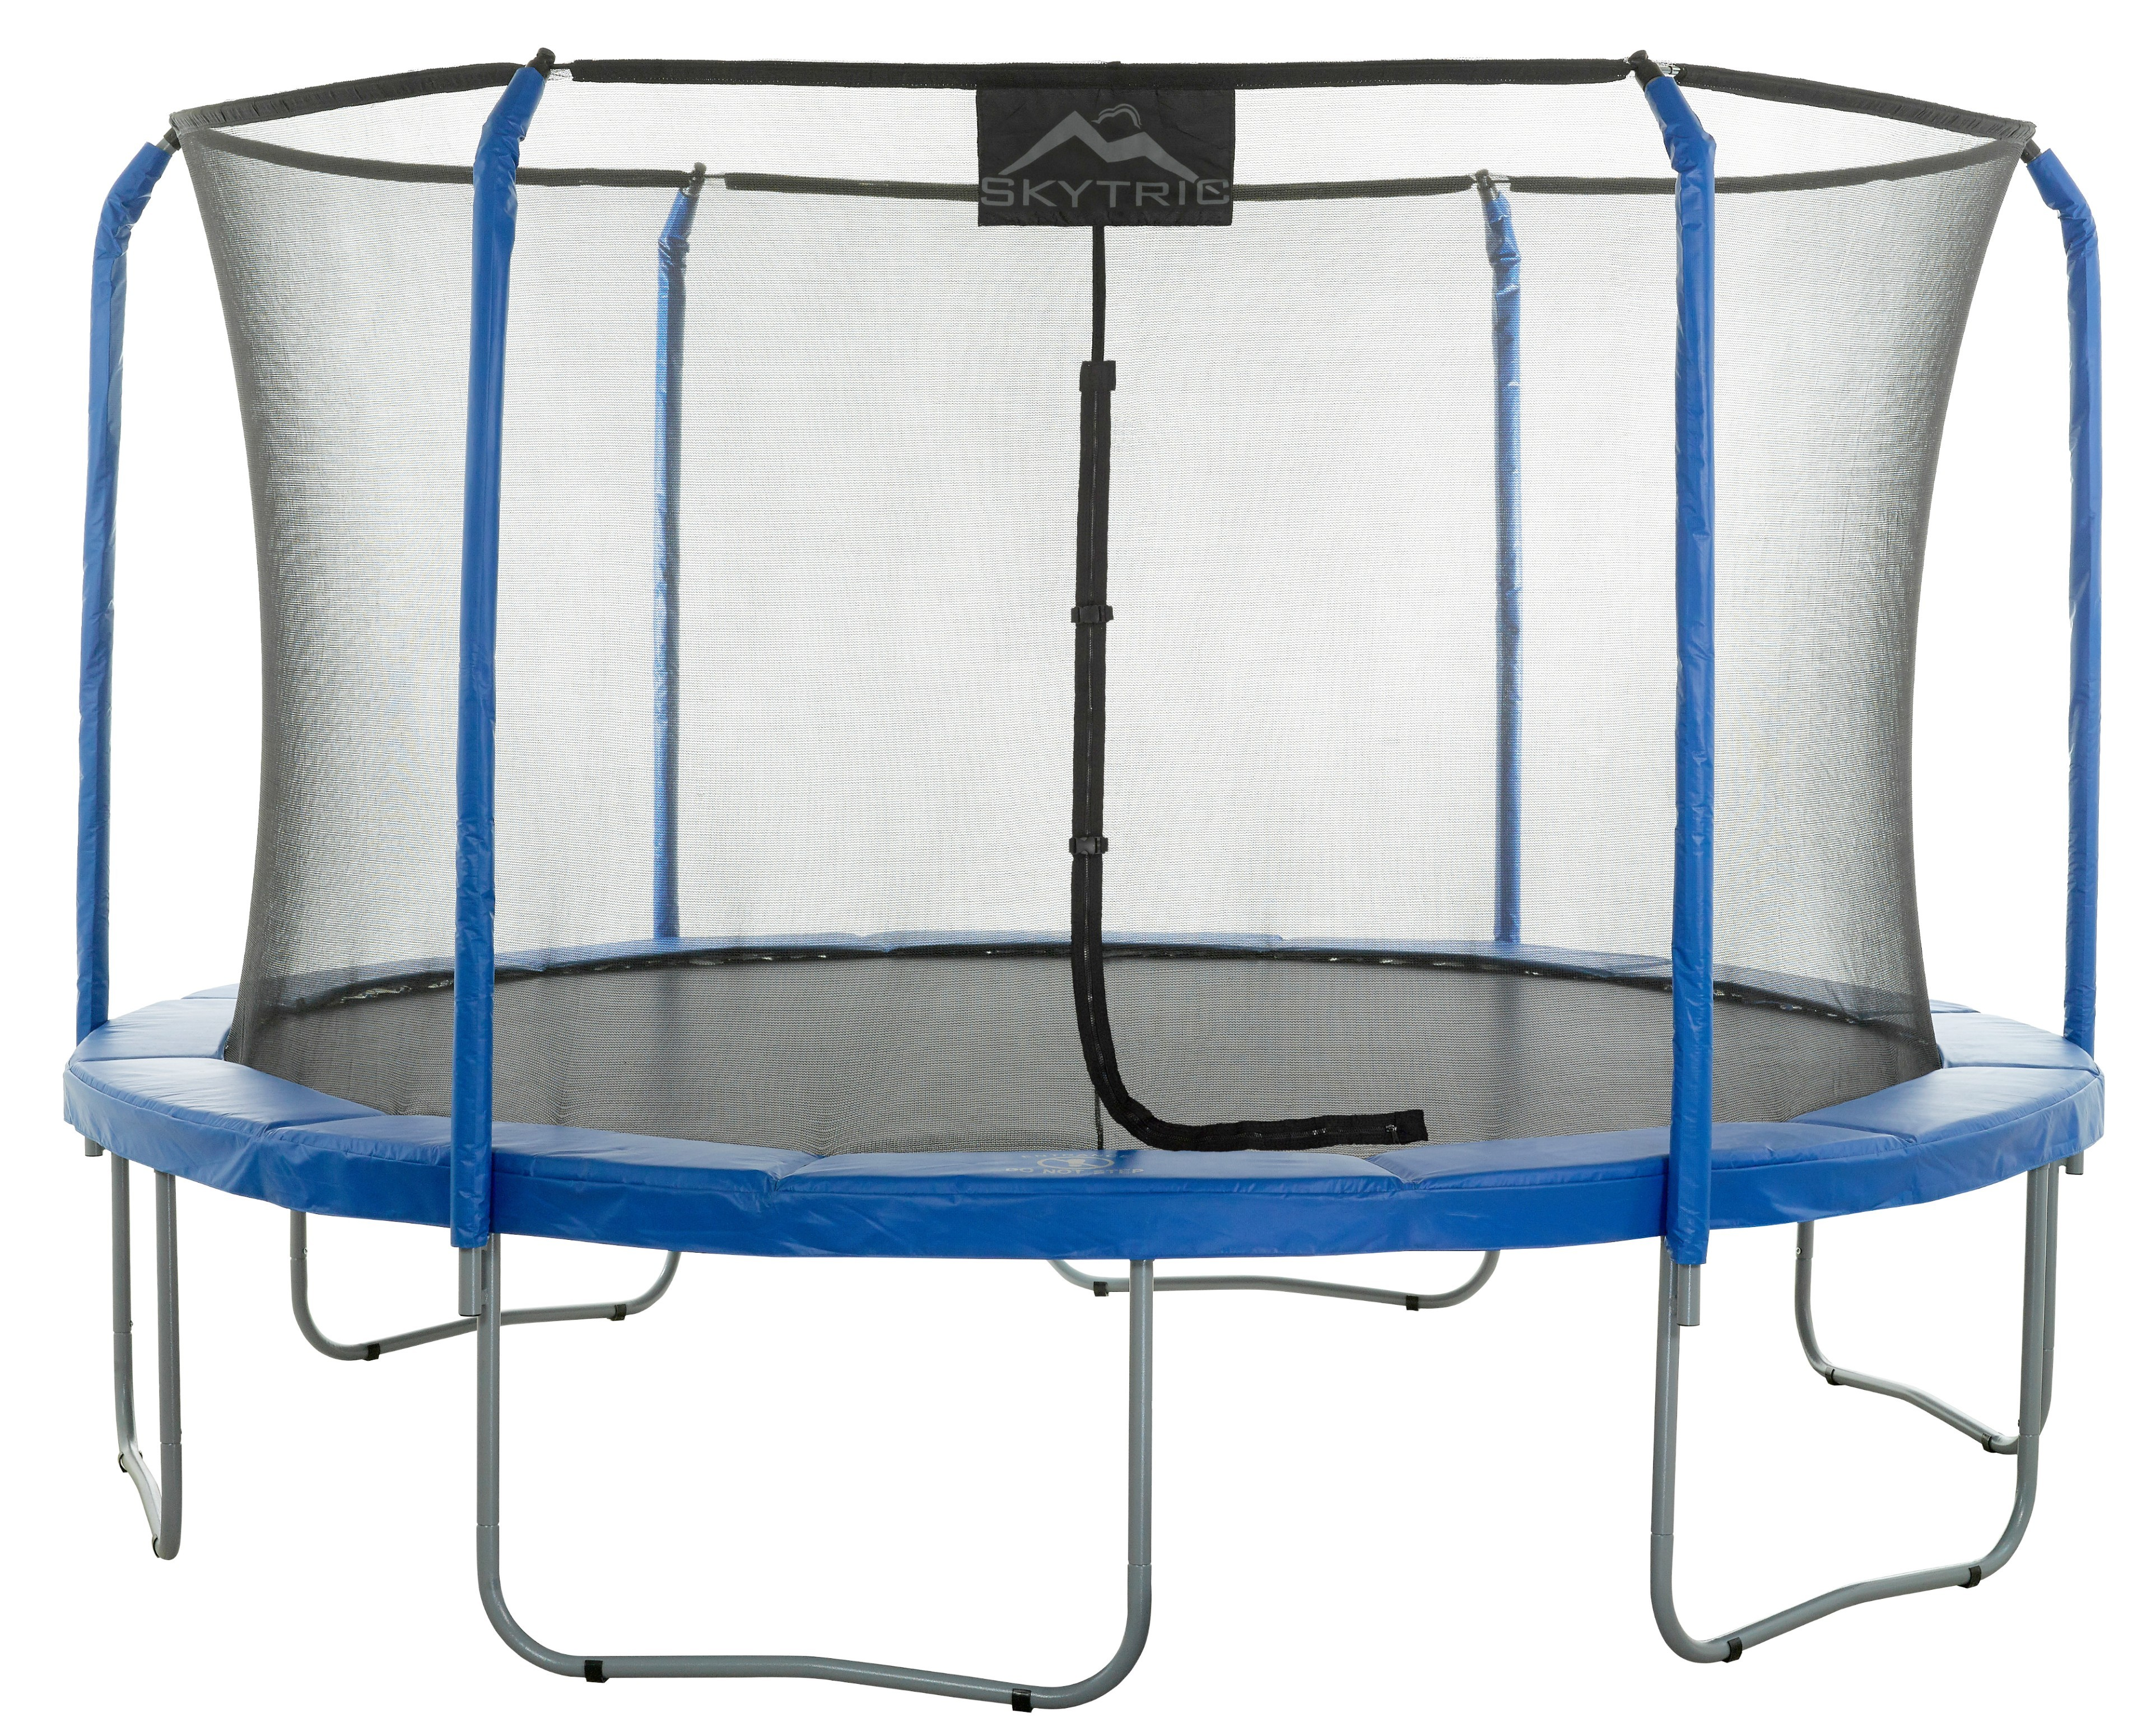 15Ft Large Trampoline and Enclosure Set | Garden & Outdoor Trampoline with Safety Net, Mat, Pad | Skytric